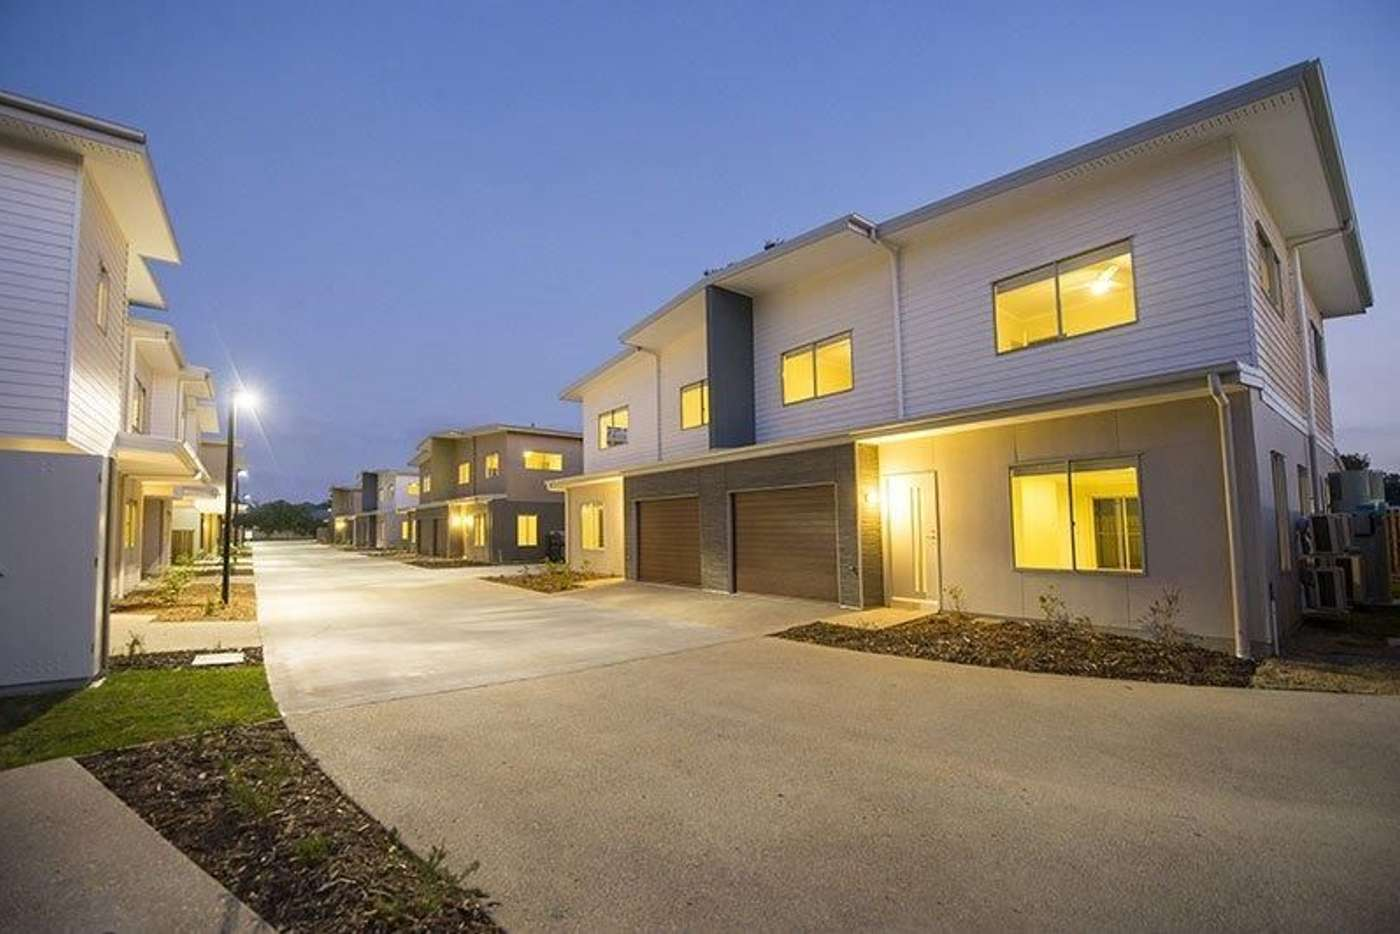 Main view of Homely townhouse listing, 8/1 Collins Lane, Kin Kora QLD 4680